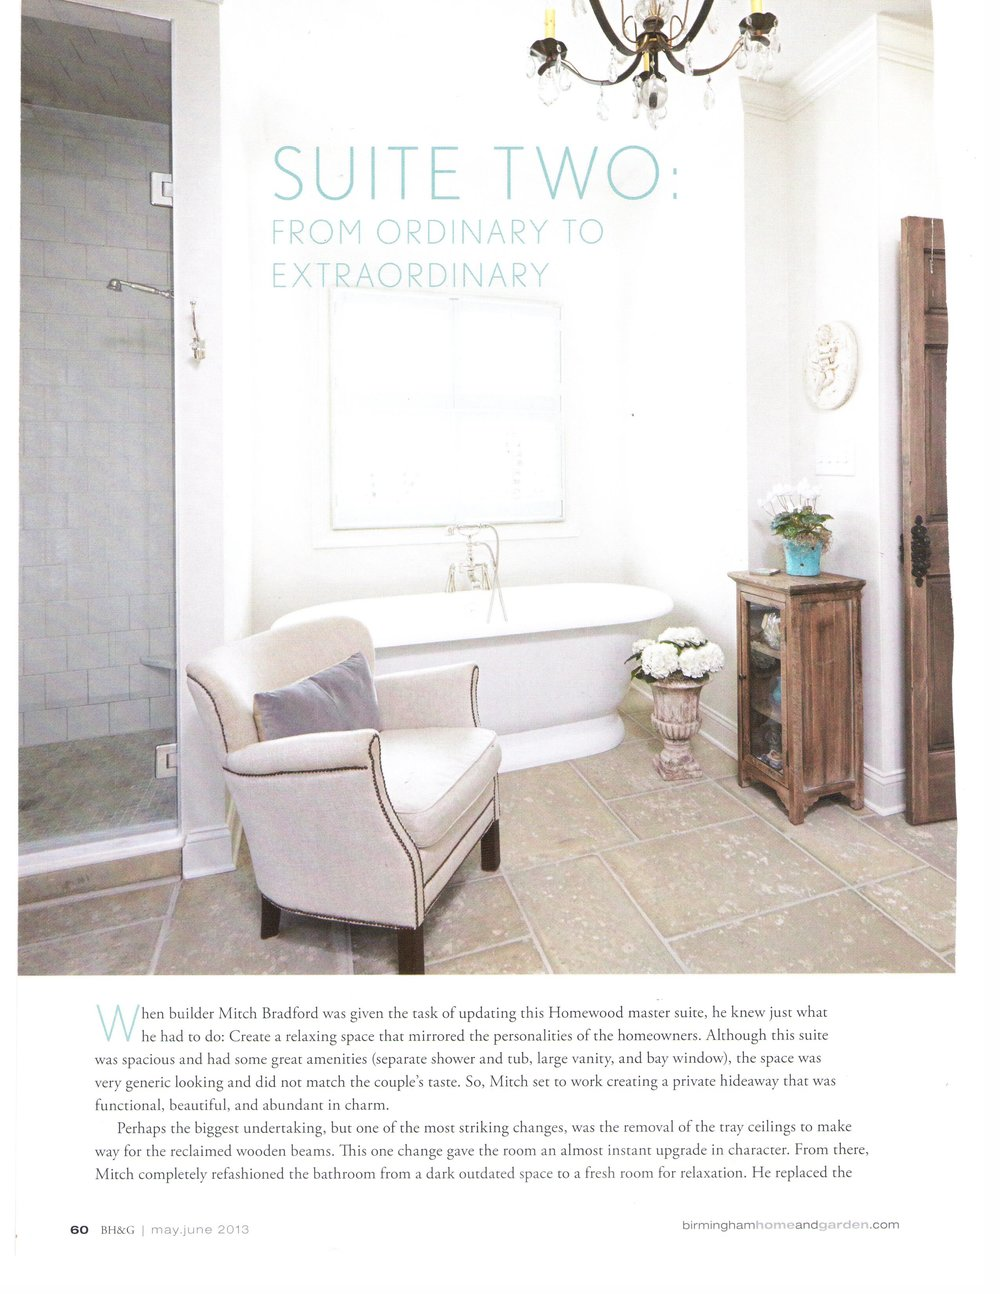 B'Ham Home & Garden Suite Upgrade magazine page 5 architecture exterior and interior design Alabama